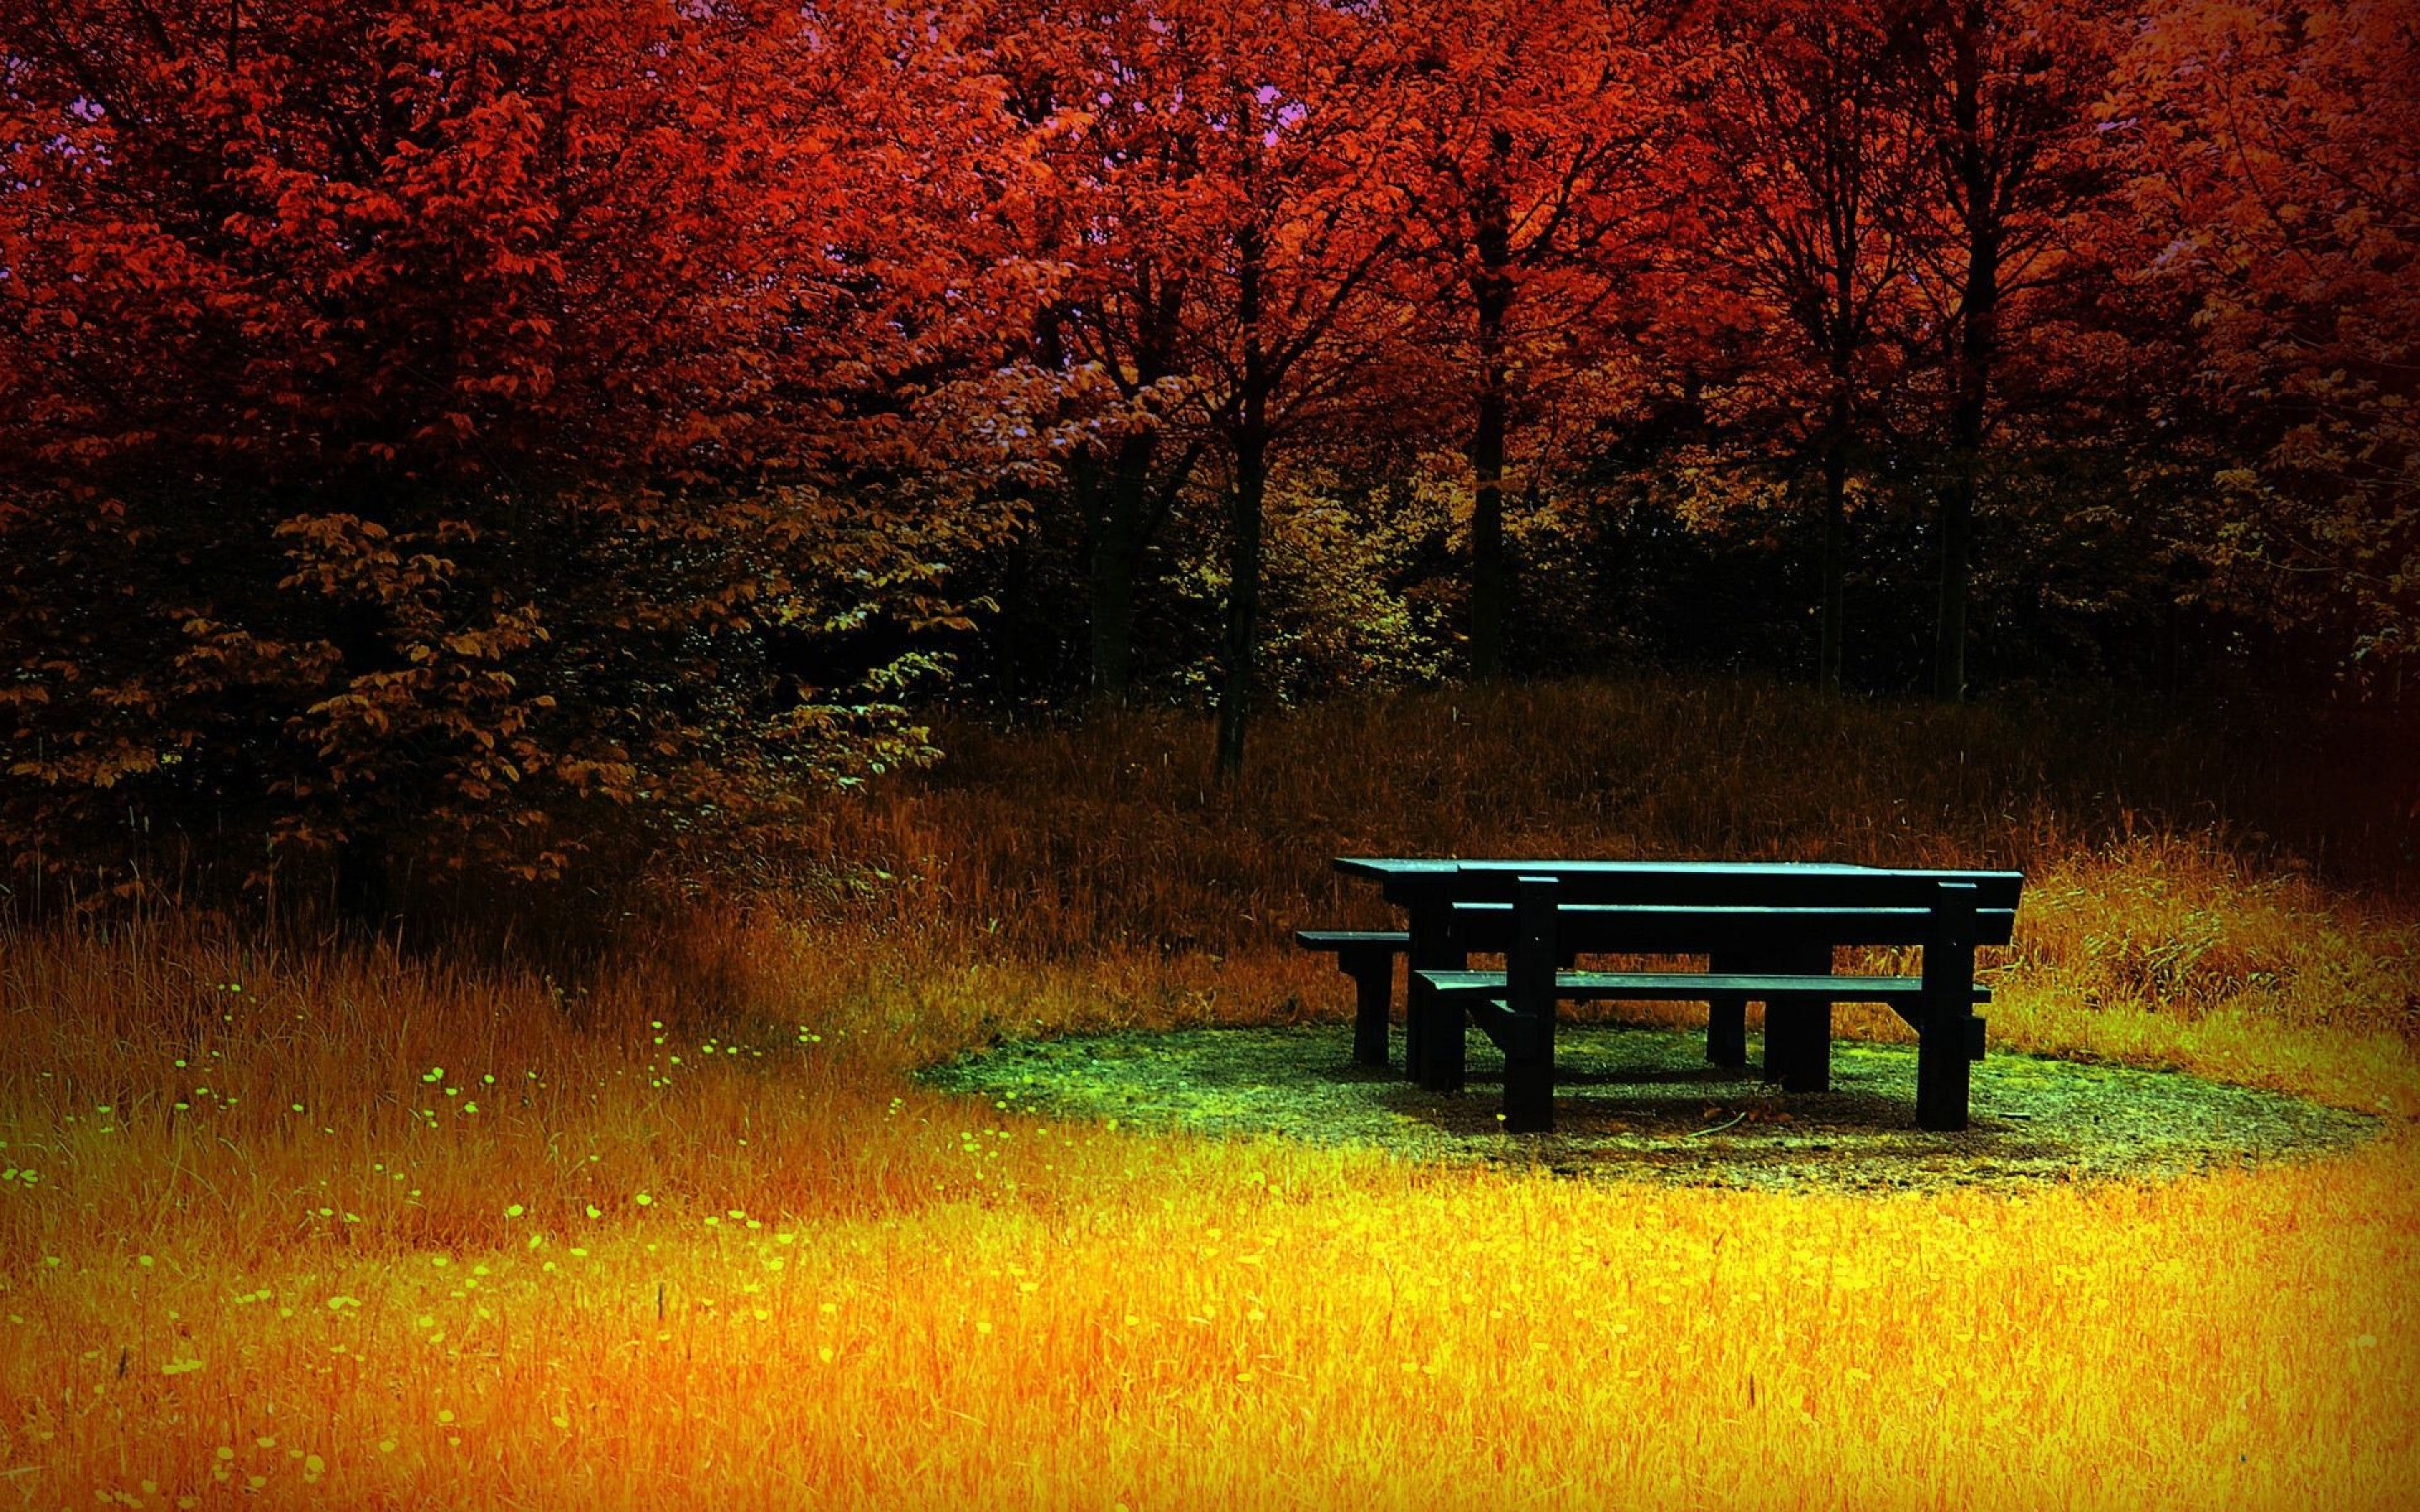 Wallpaper Nature, Lonely Bench in the Woods 369.81 Kb